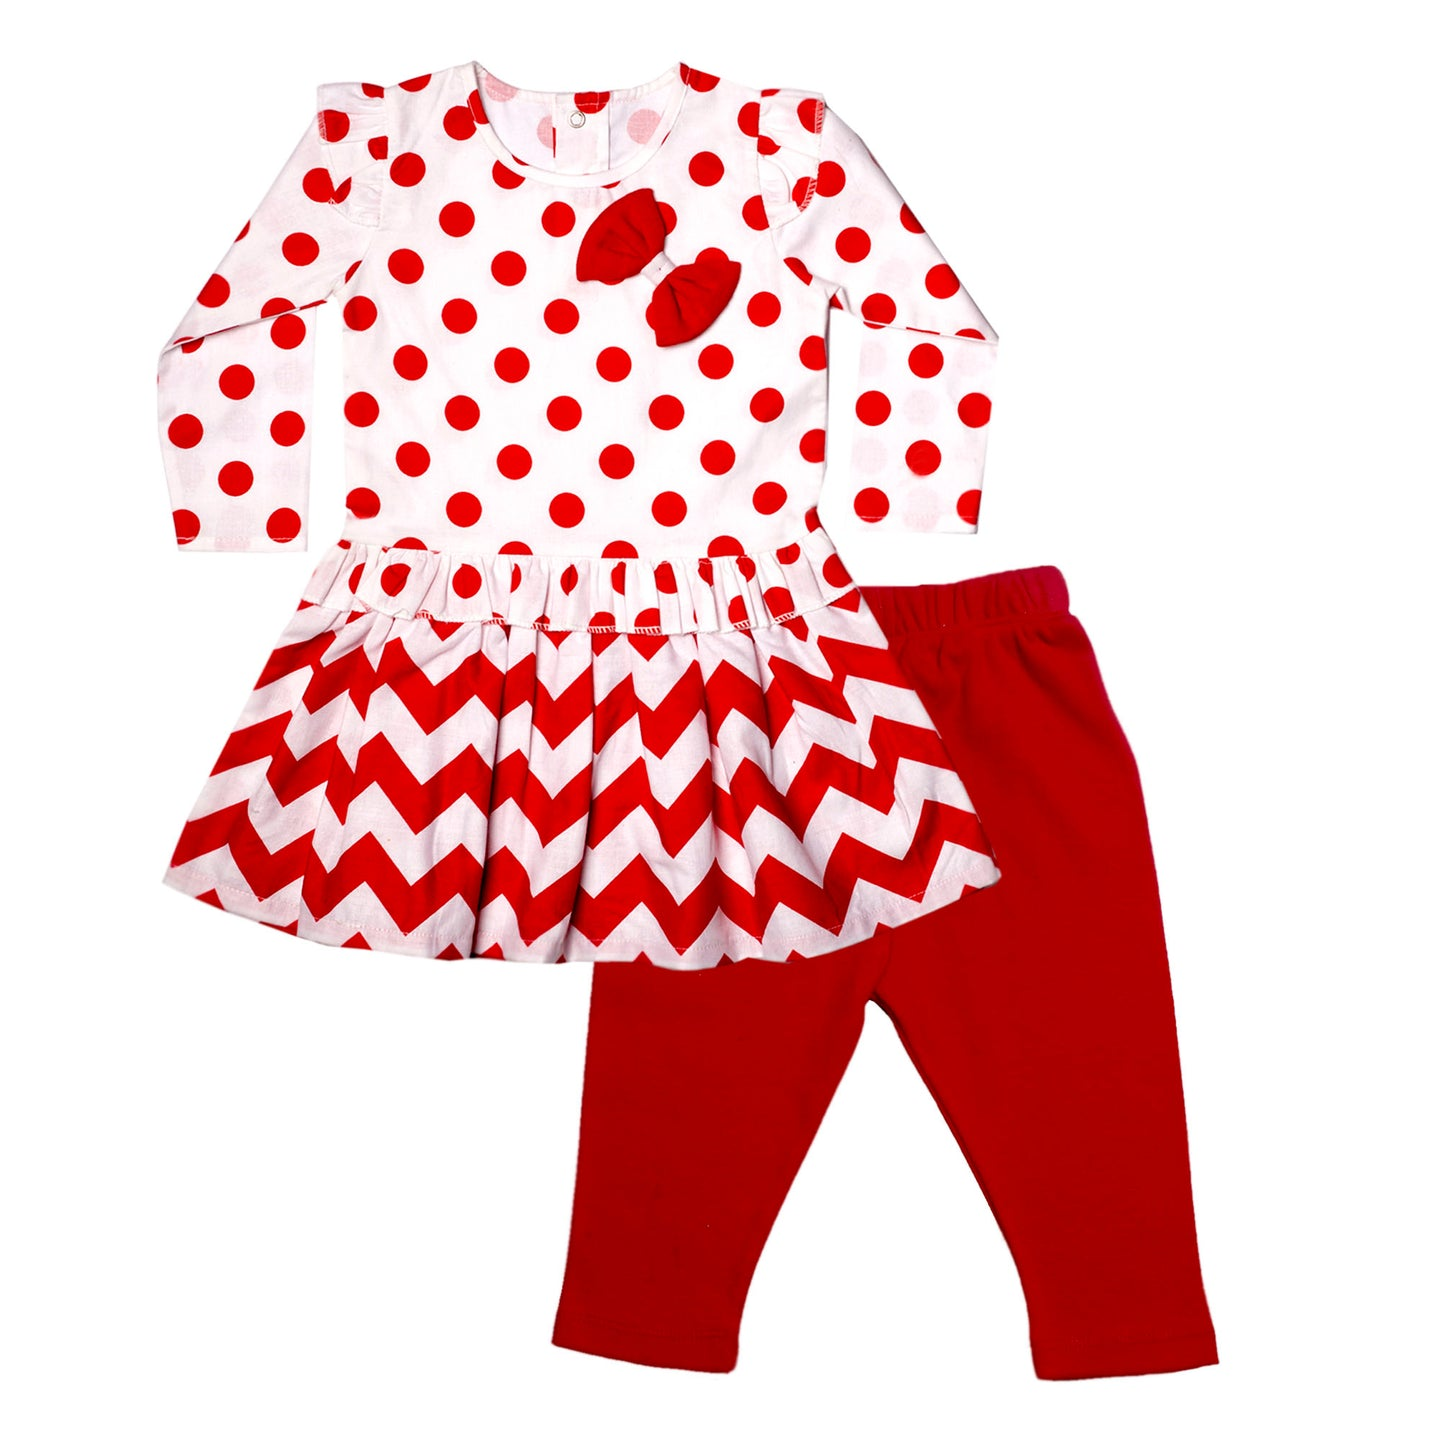 FS-83 Baby Girl 2-Piece Full-Sleeves Dress with Pants - Red Polka Dots Print - Featherhead Baby